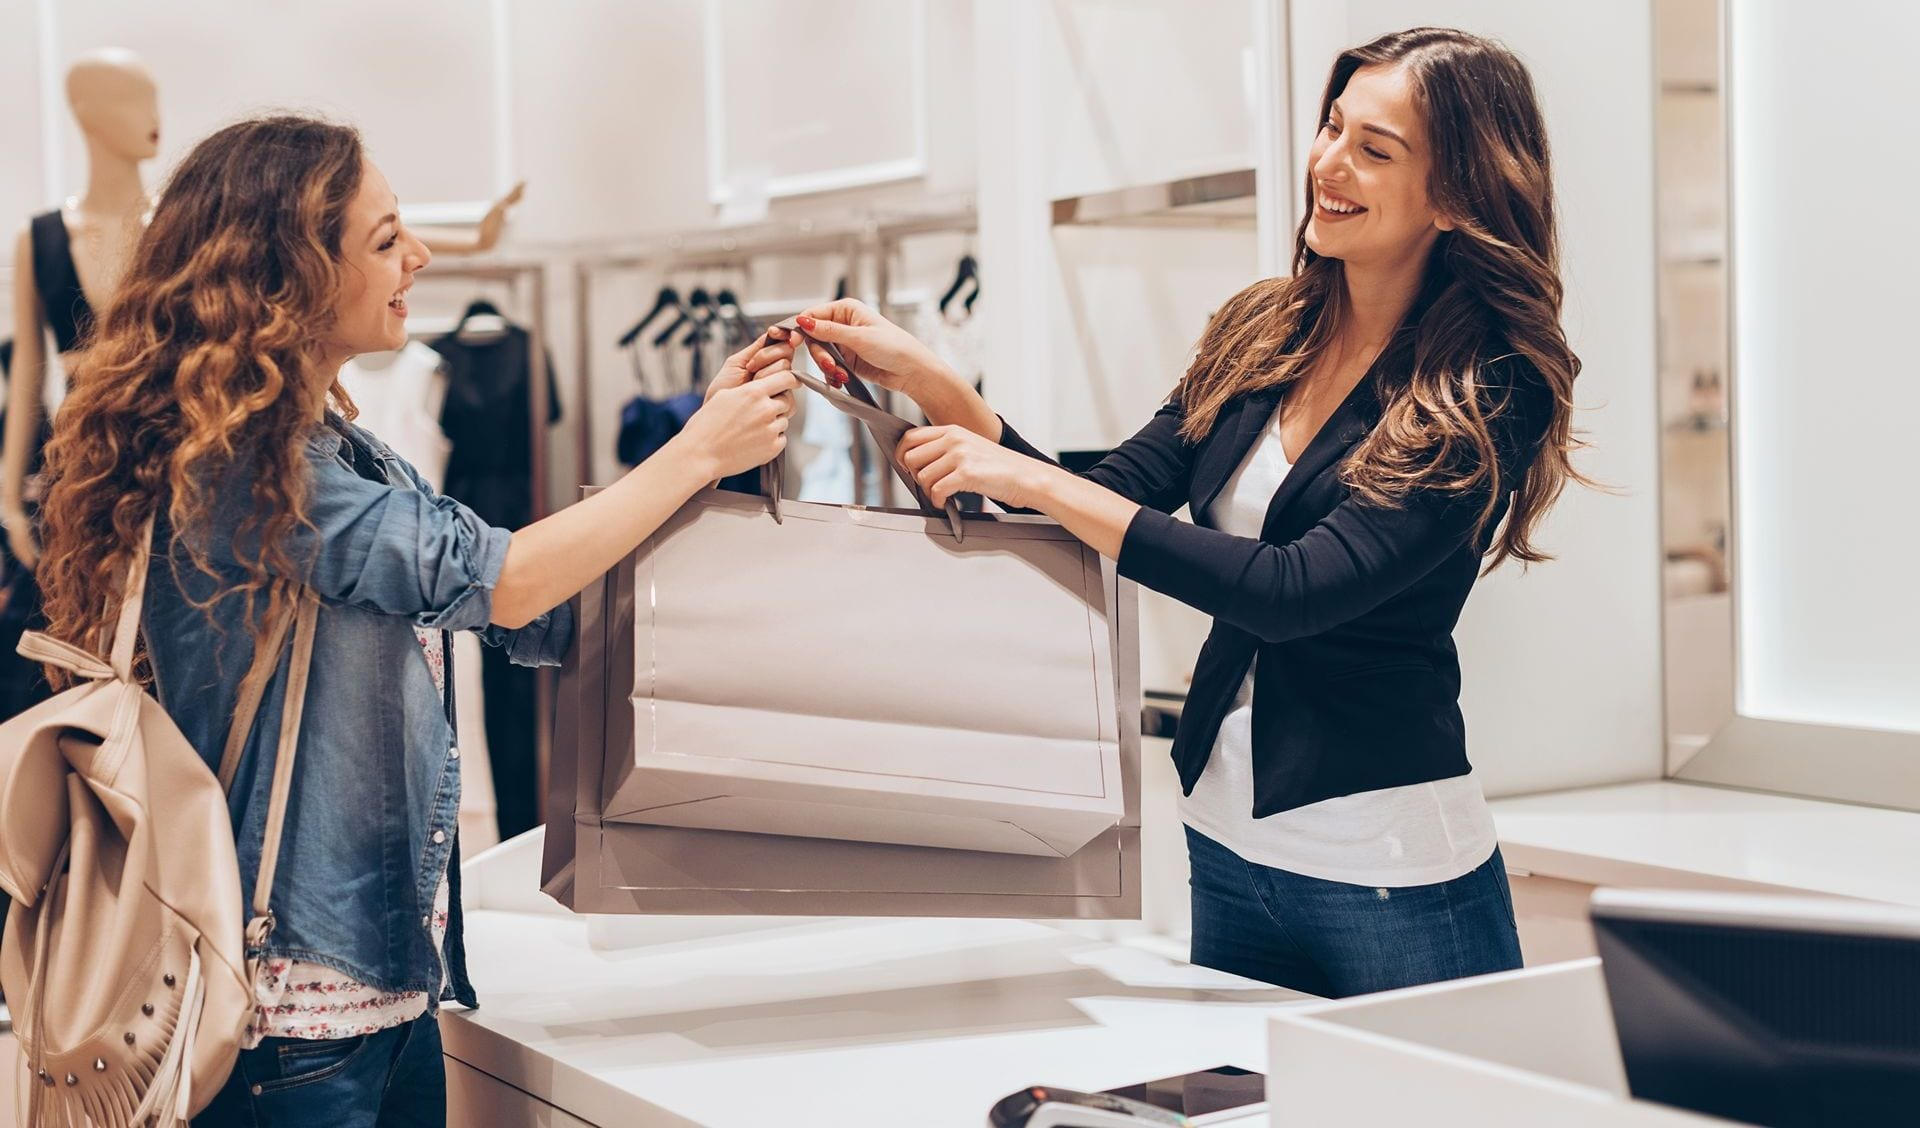 Young woman taking her shopping bags in a fashion store